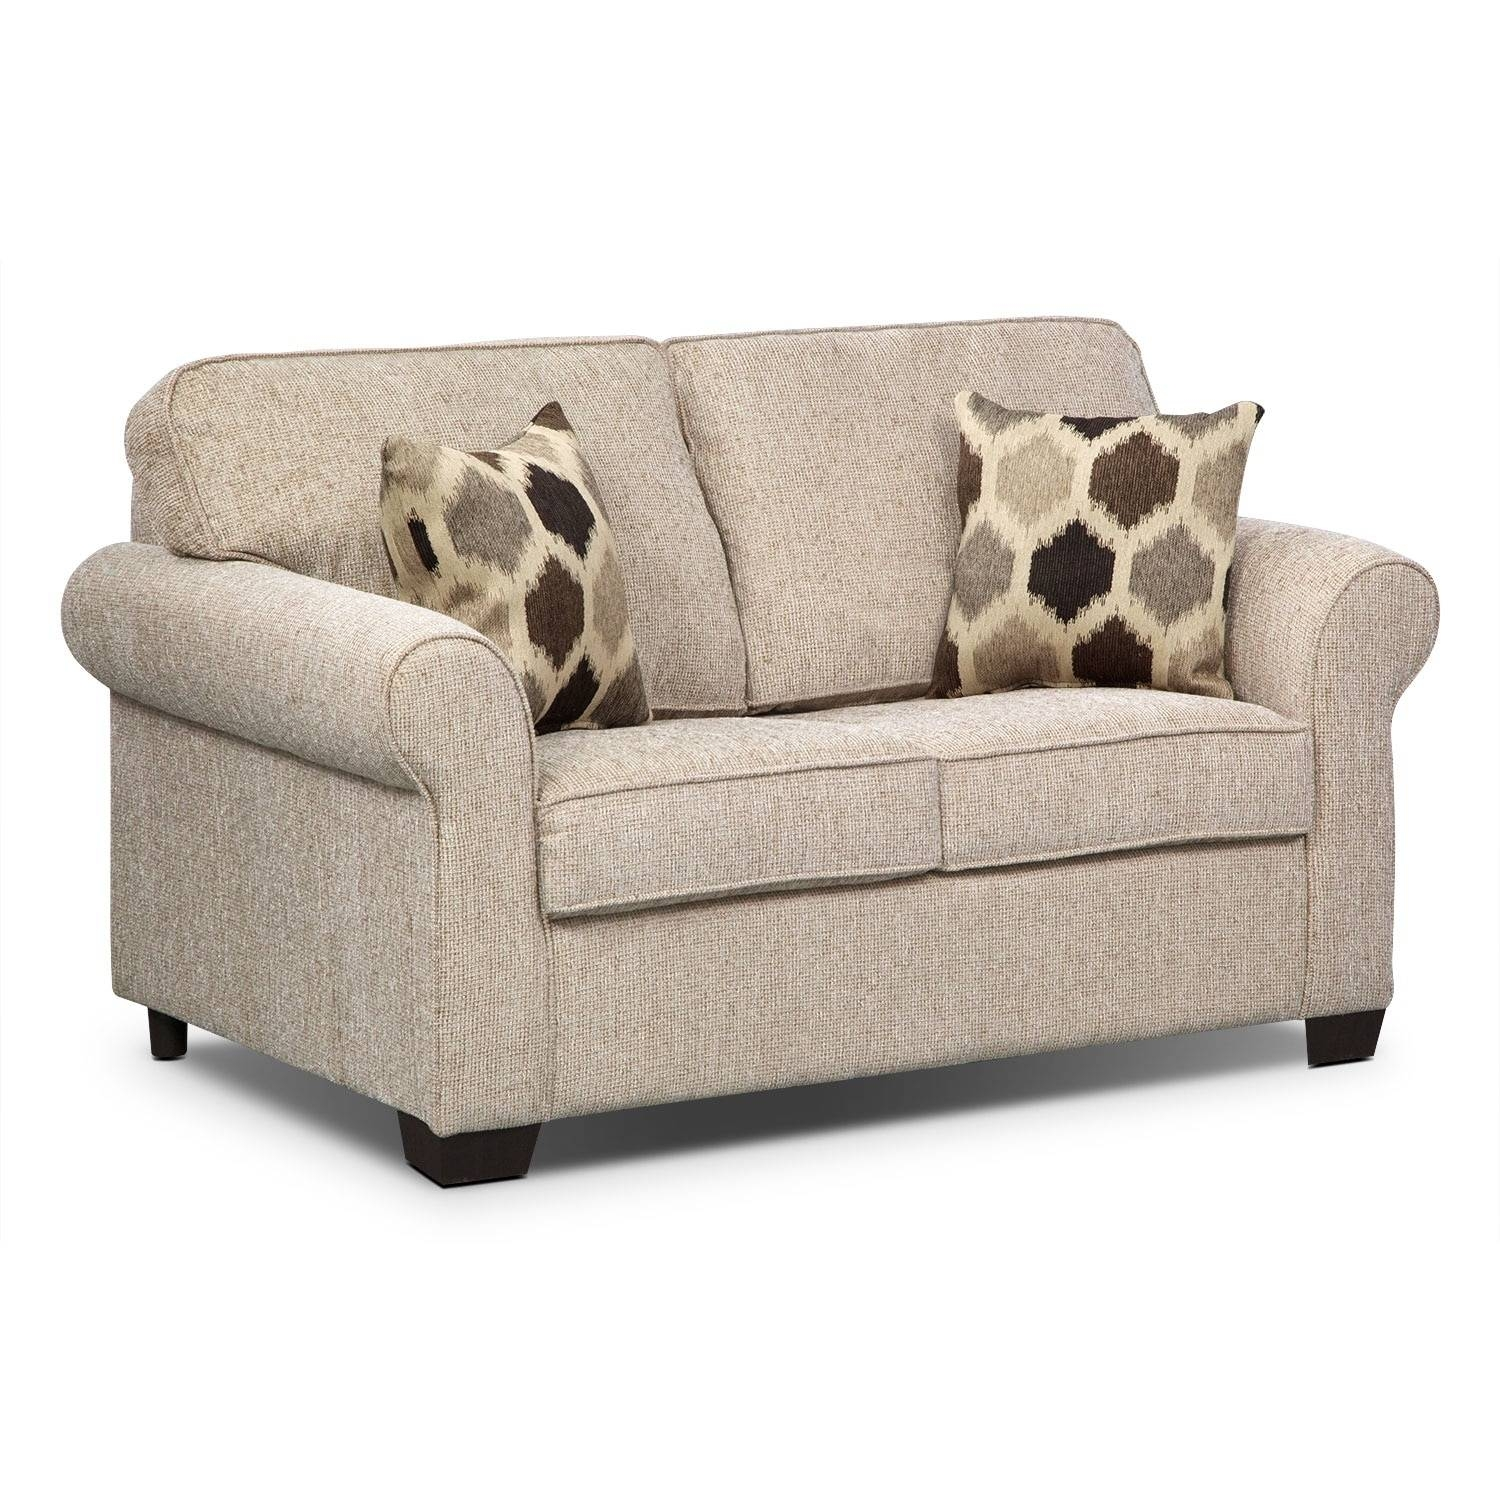 Fletcher Twin Memory Foam Sleeper Sofa - Beige | Value City Furniture in Twin Sleeper Sofa Chairs (Image 5 of 30)